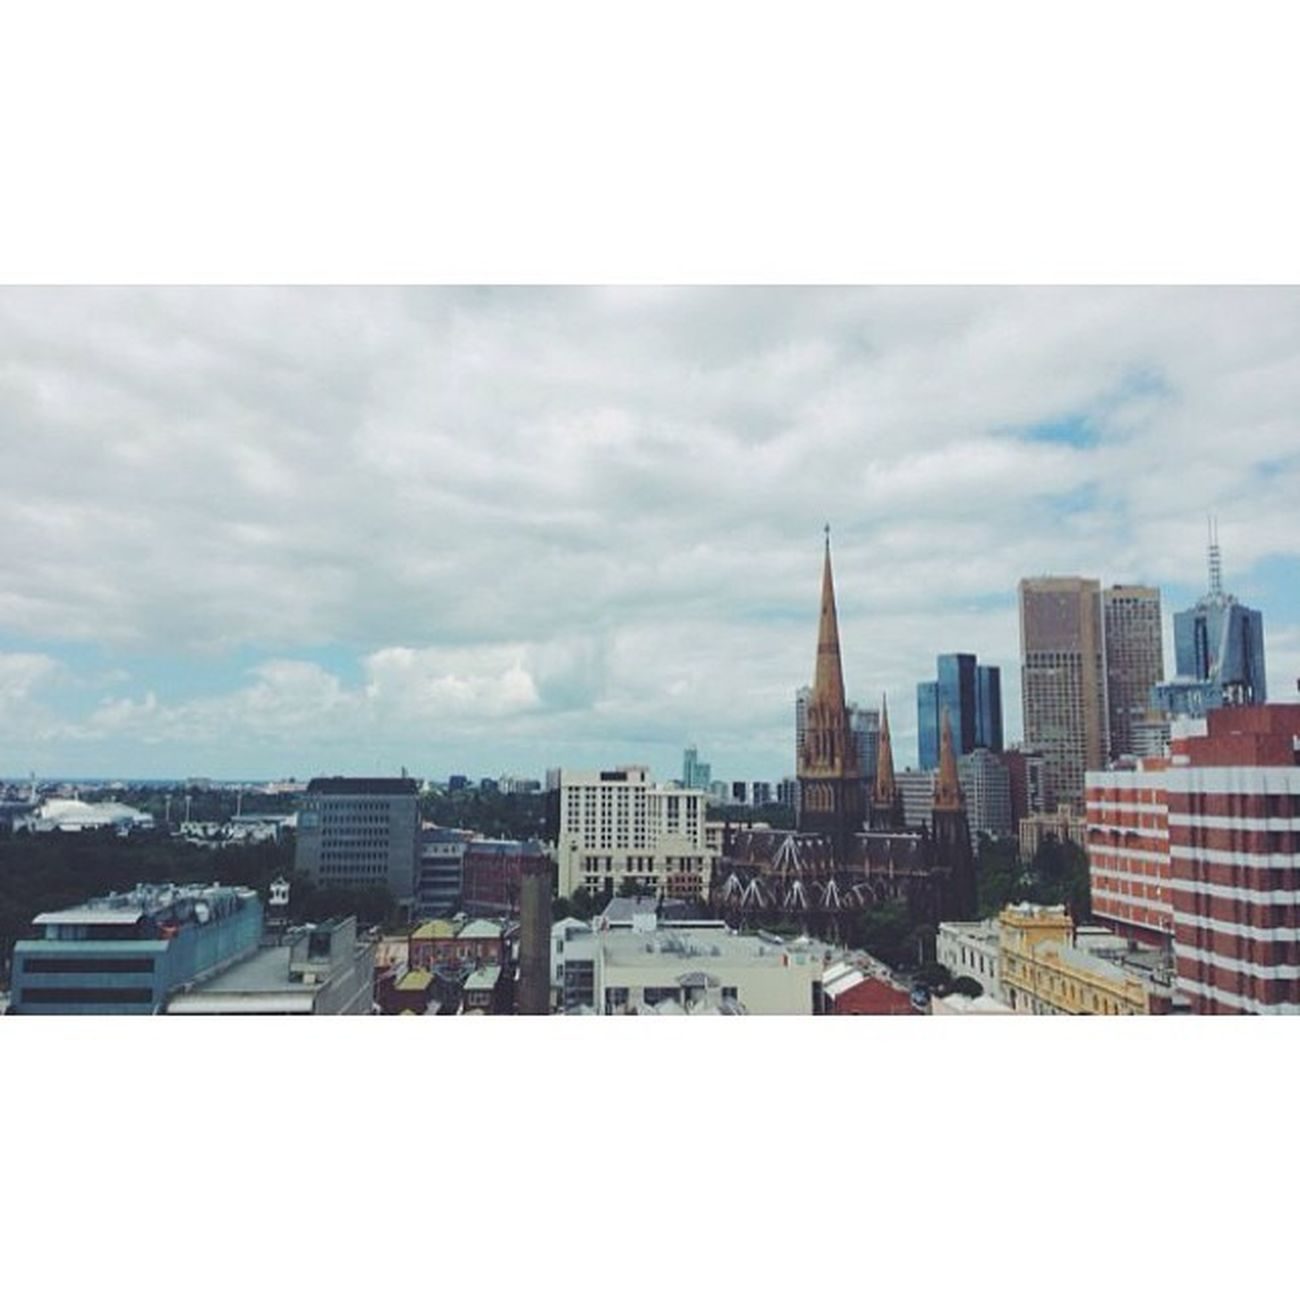 skyline, melbourne edition